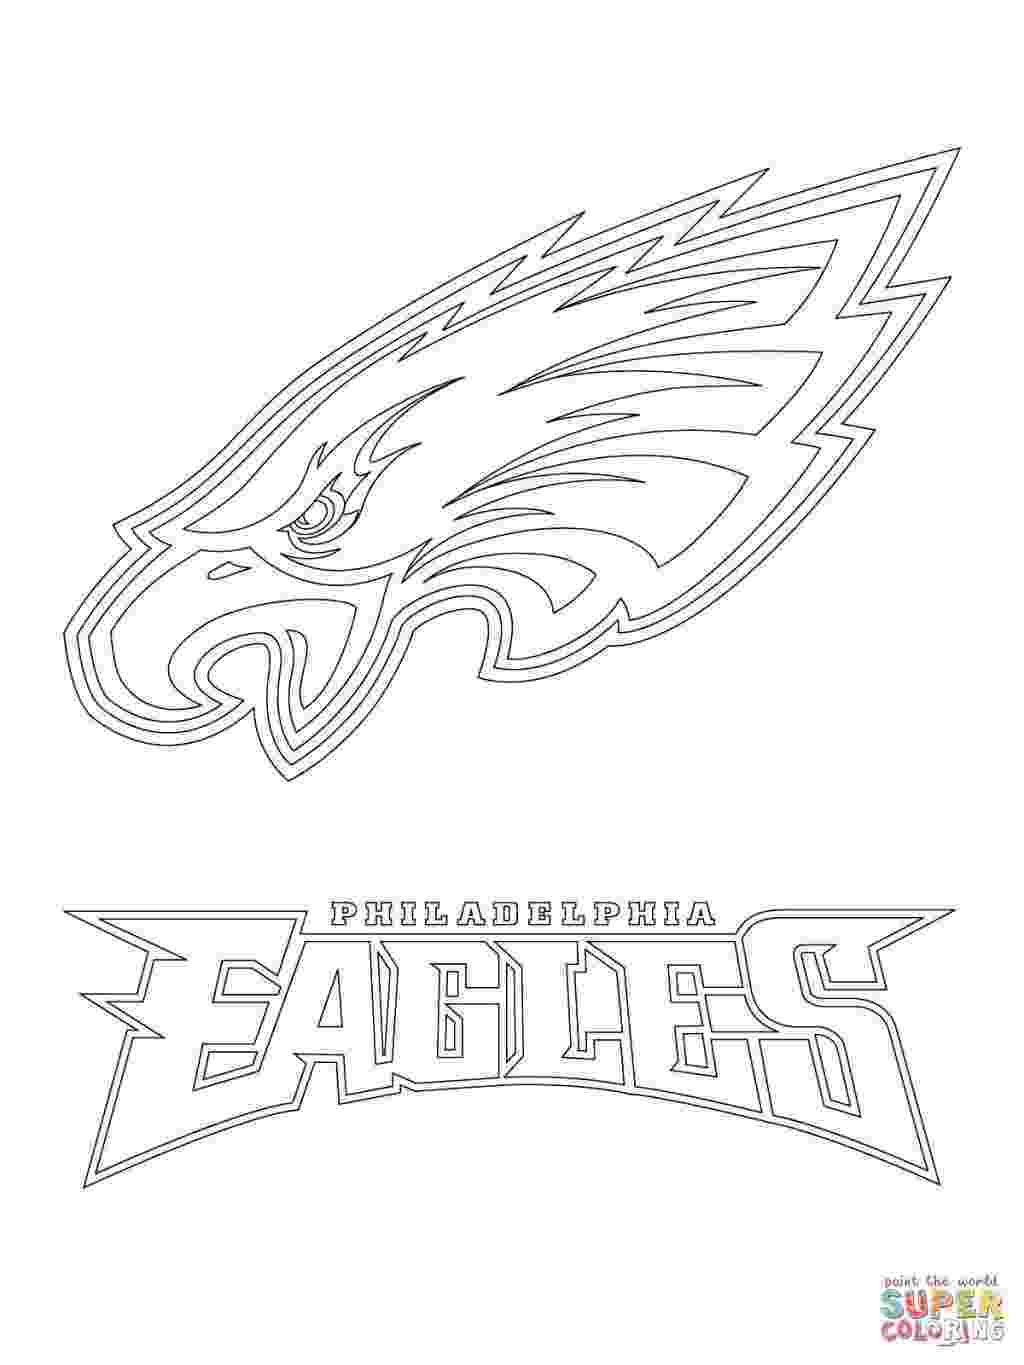 eagles football coloring pages top 10 free printable philadelphia eagles coloring pages eagles football coloring pages